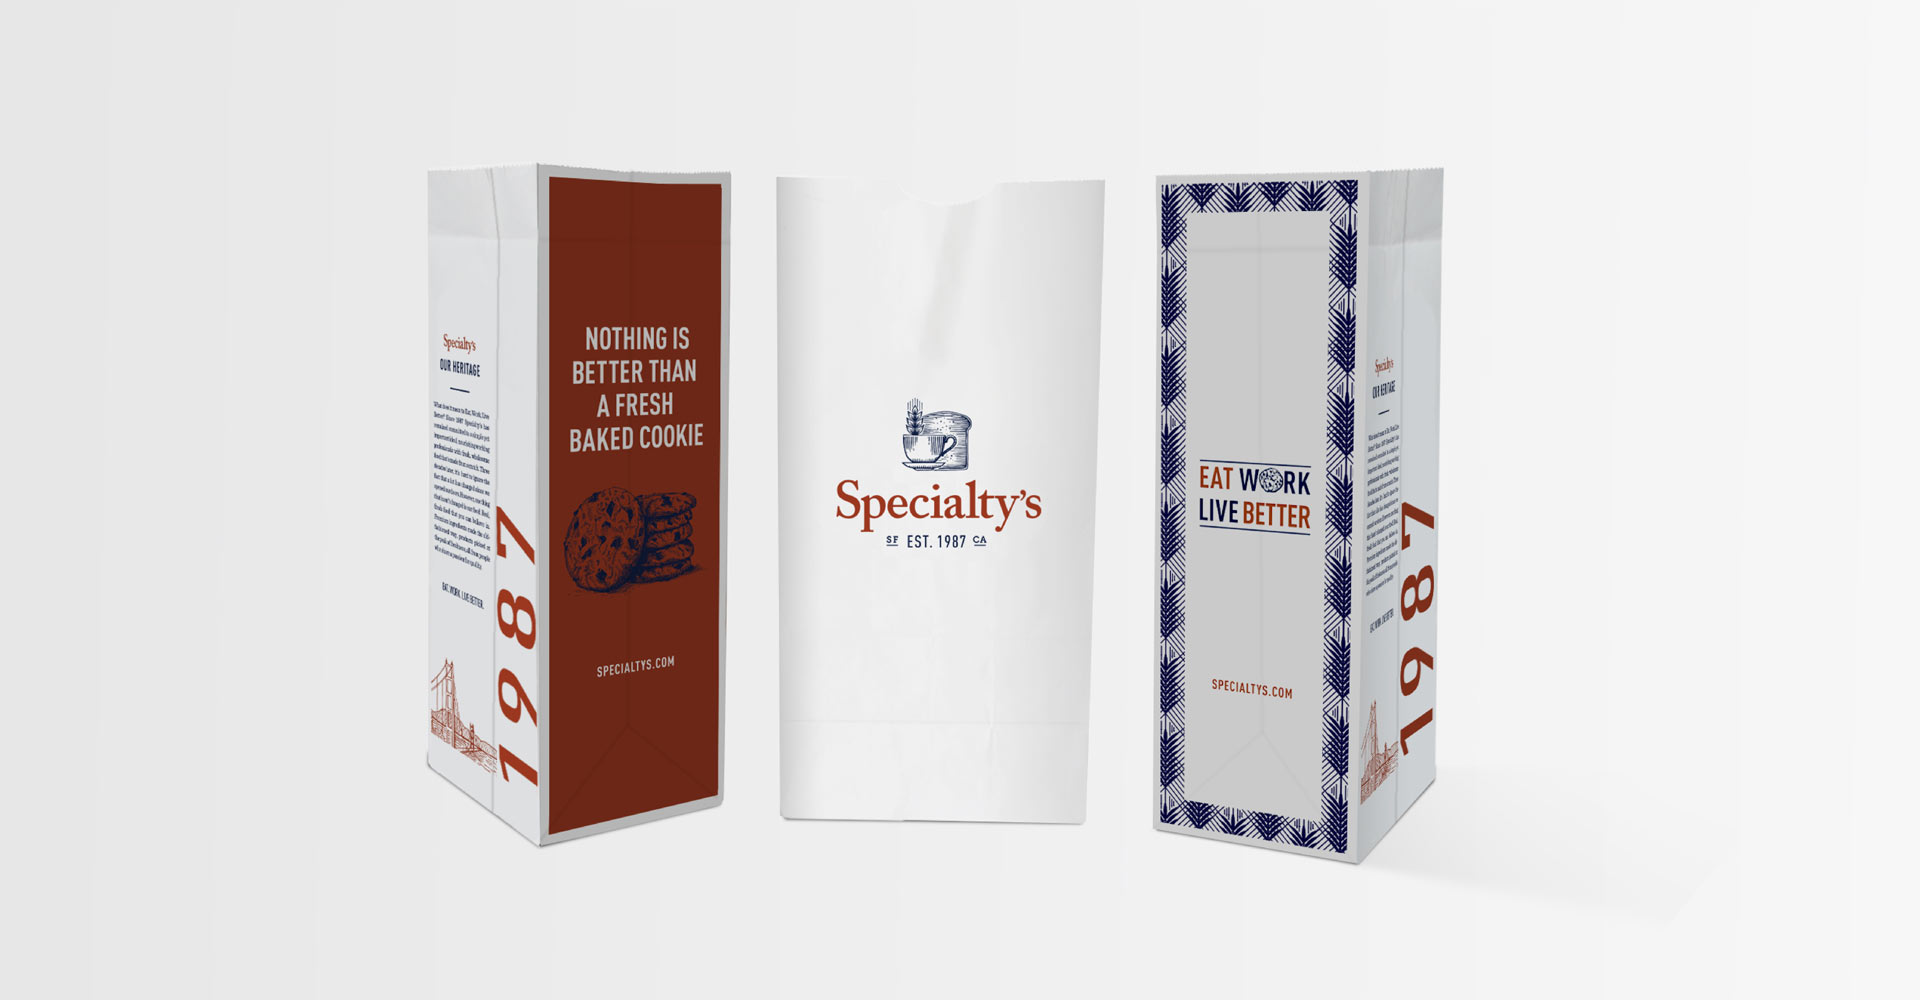 Creative_Retail_Packaging_Design_Specialtys_Cafe_Bakery-13.jpg